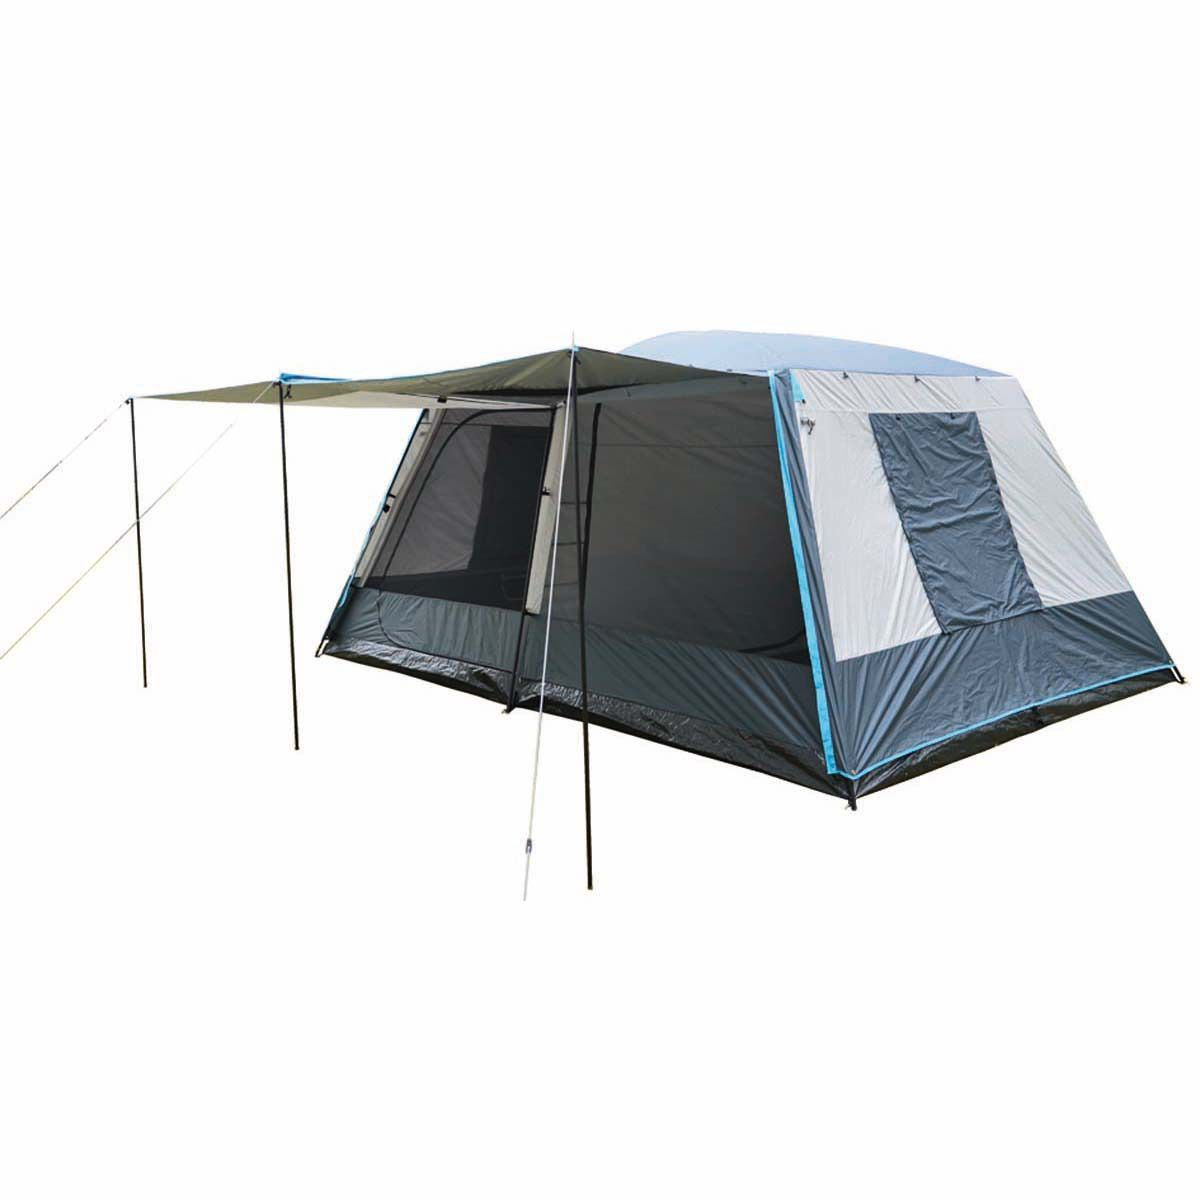 Wanderer Goliath Tent - 10 Person - BCF Australia  sc 1 st  Pinterest & Oztrail Hightower Combo Dome Tent - 12 Person | Camping ...